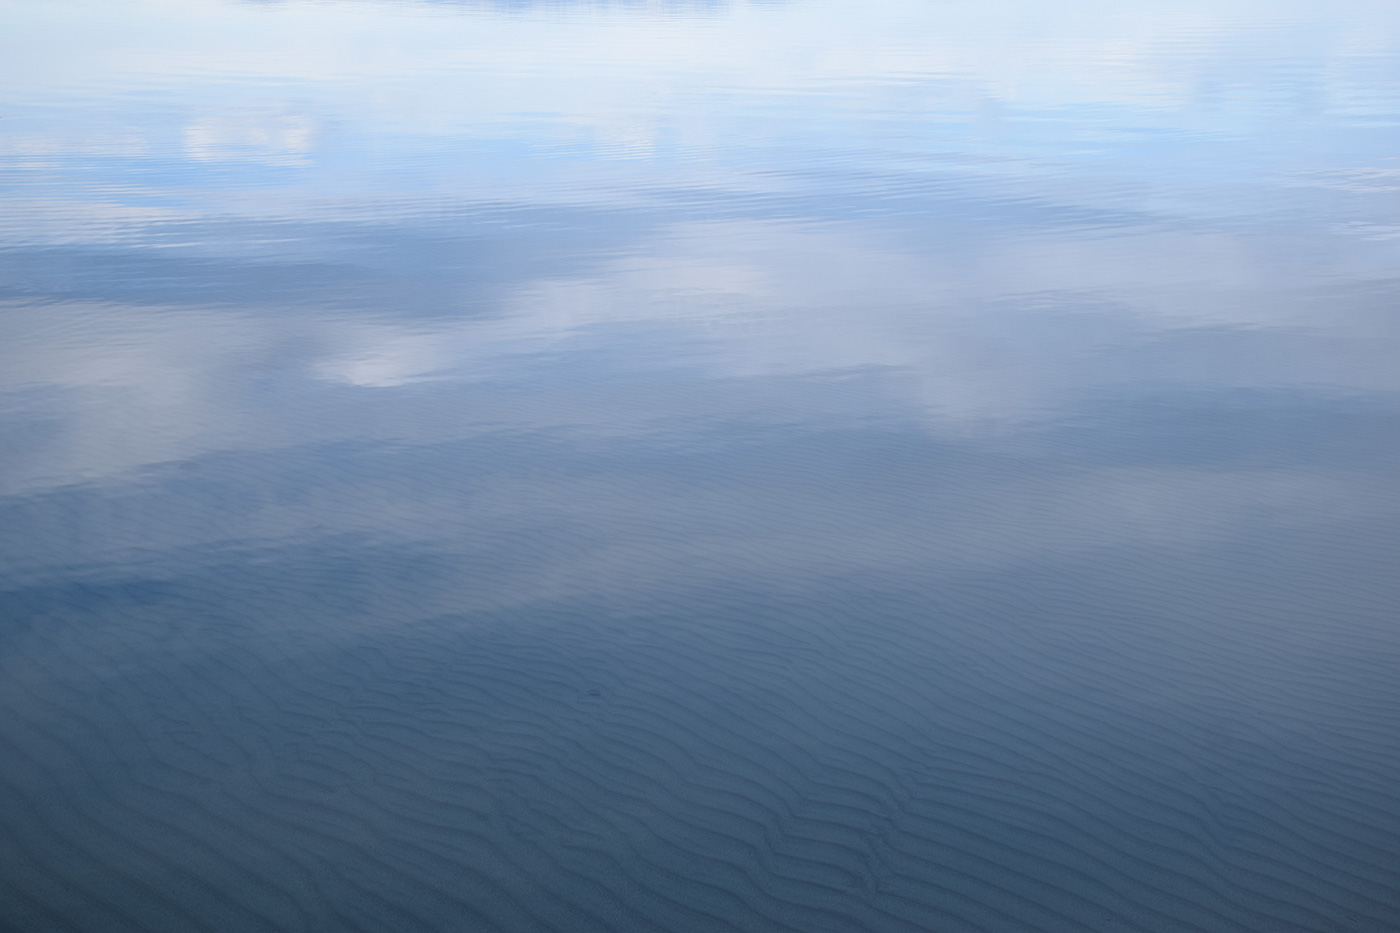 You can just make out the little sand ridges under the water from the waves at the lake the day before.